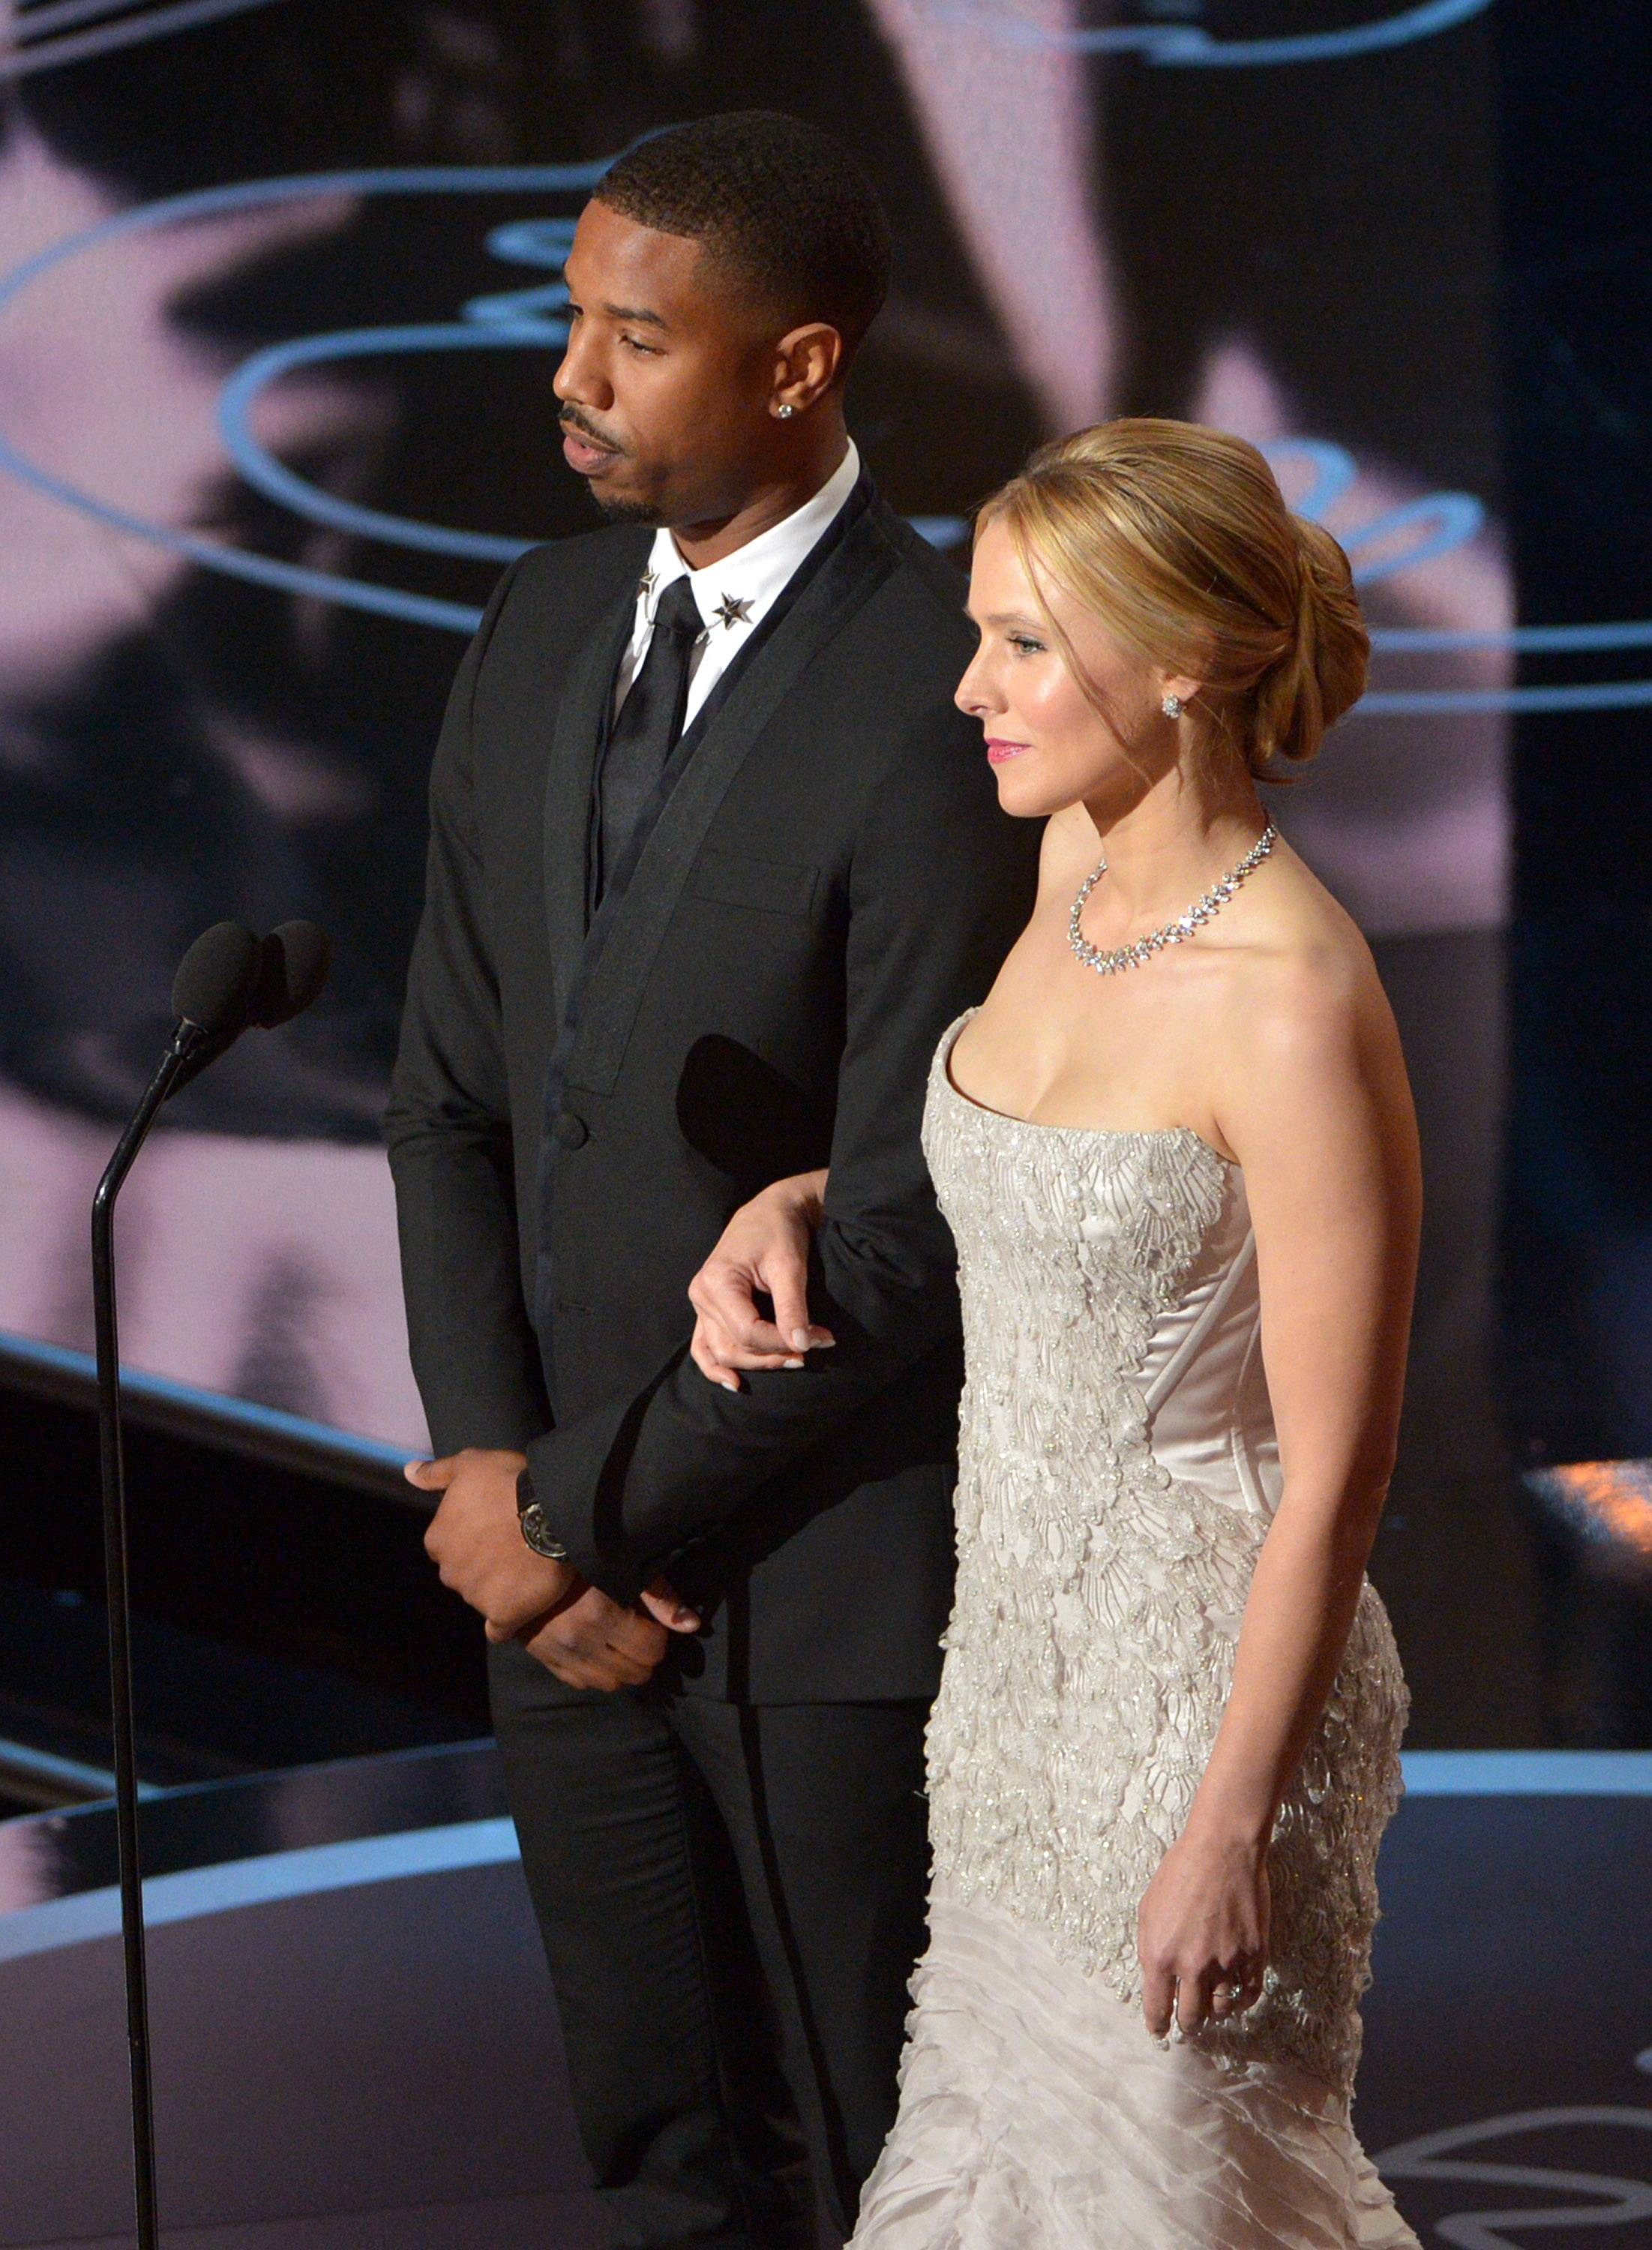 Michael B. Jordan, left, and Kristen Bell speak during the Oscars.